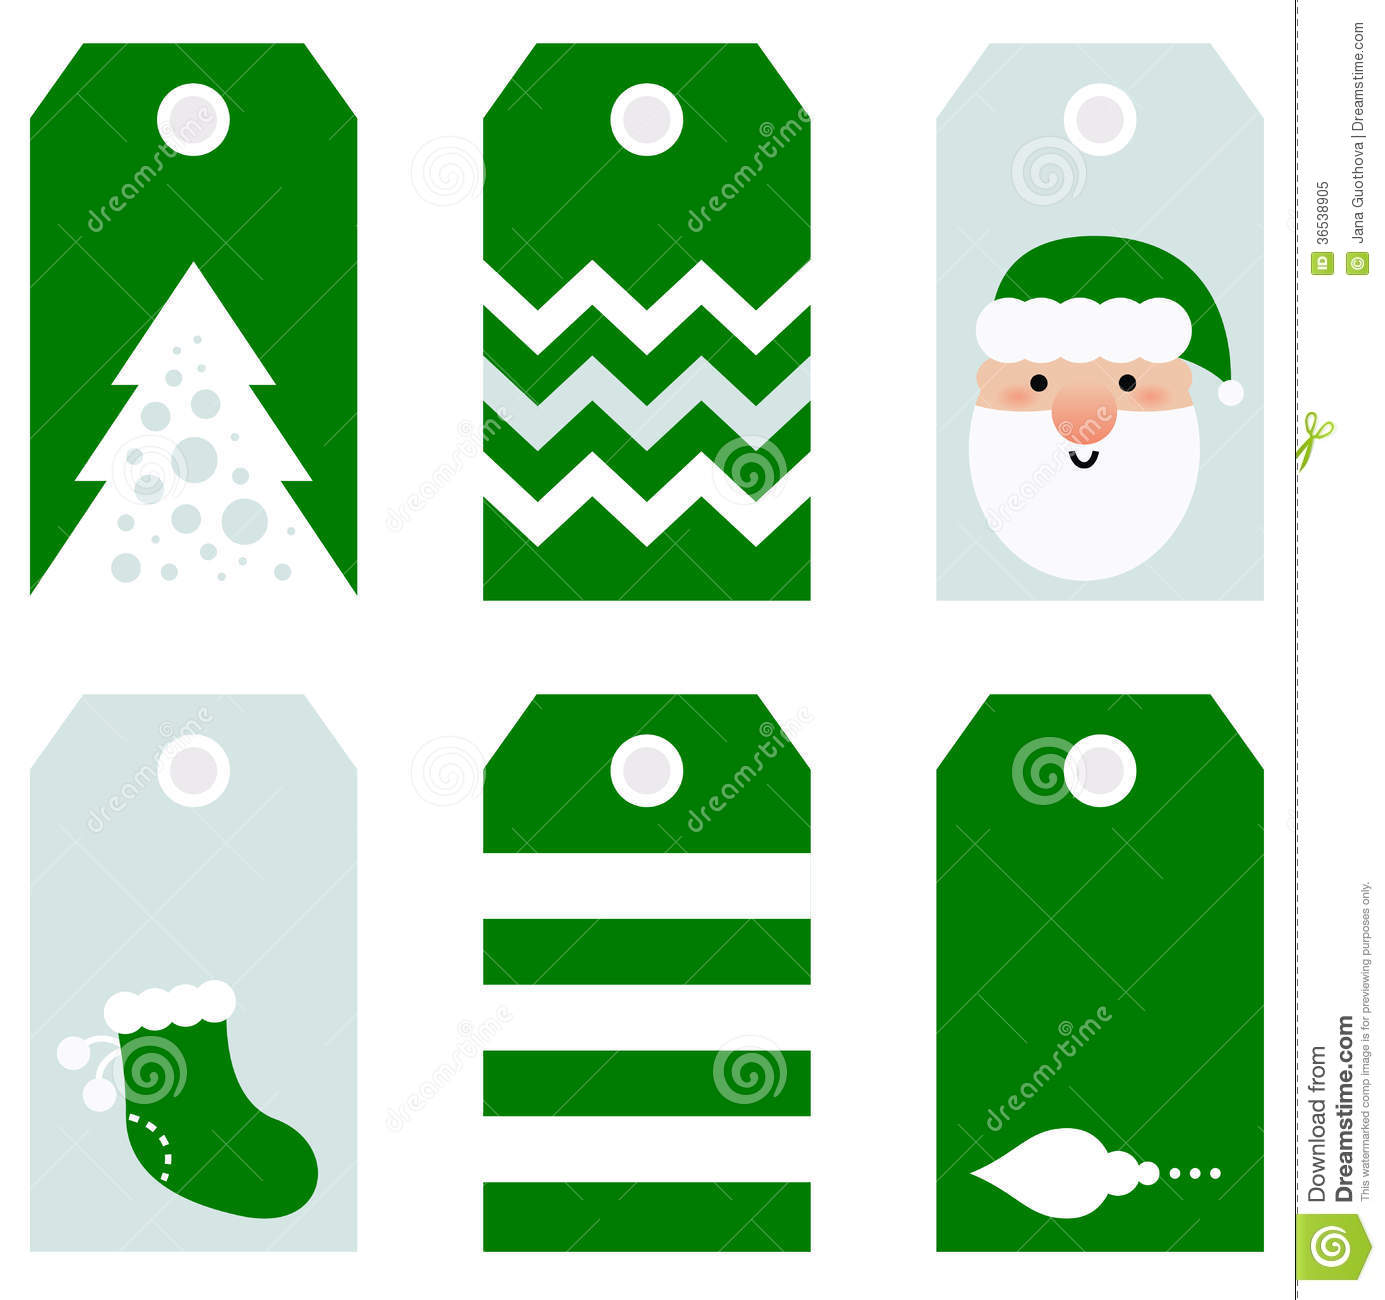 Cute Modern Christmas Holiday Gift Tags Printables Royalty Free Stock ...